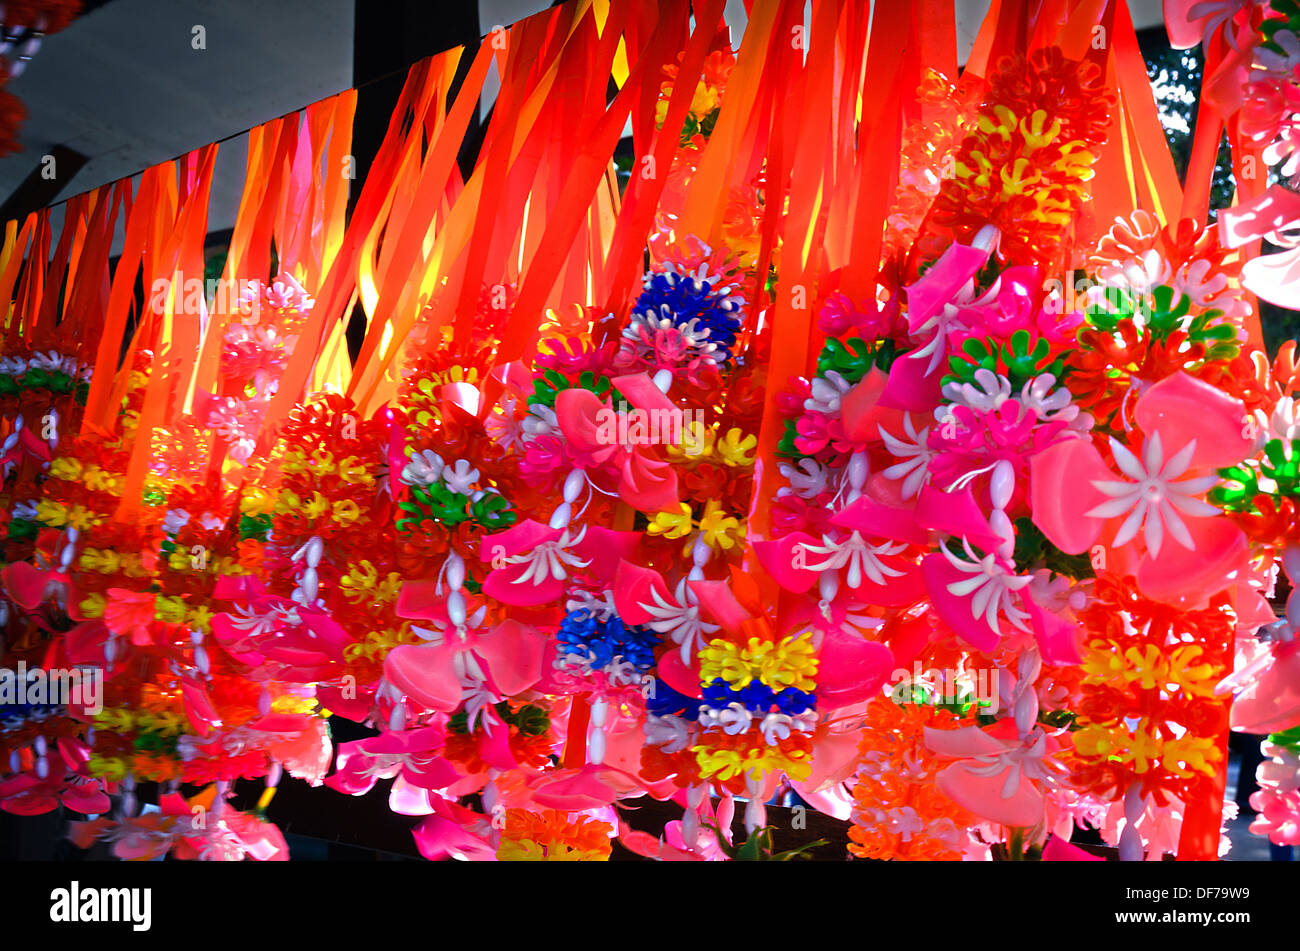 The Artificial Garland for Giving to sacred items or Holy Things. - Stock Image